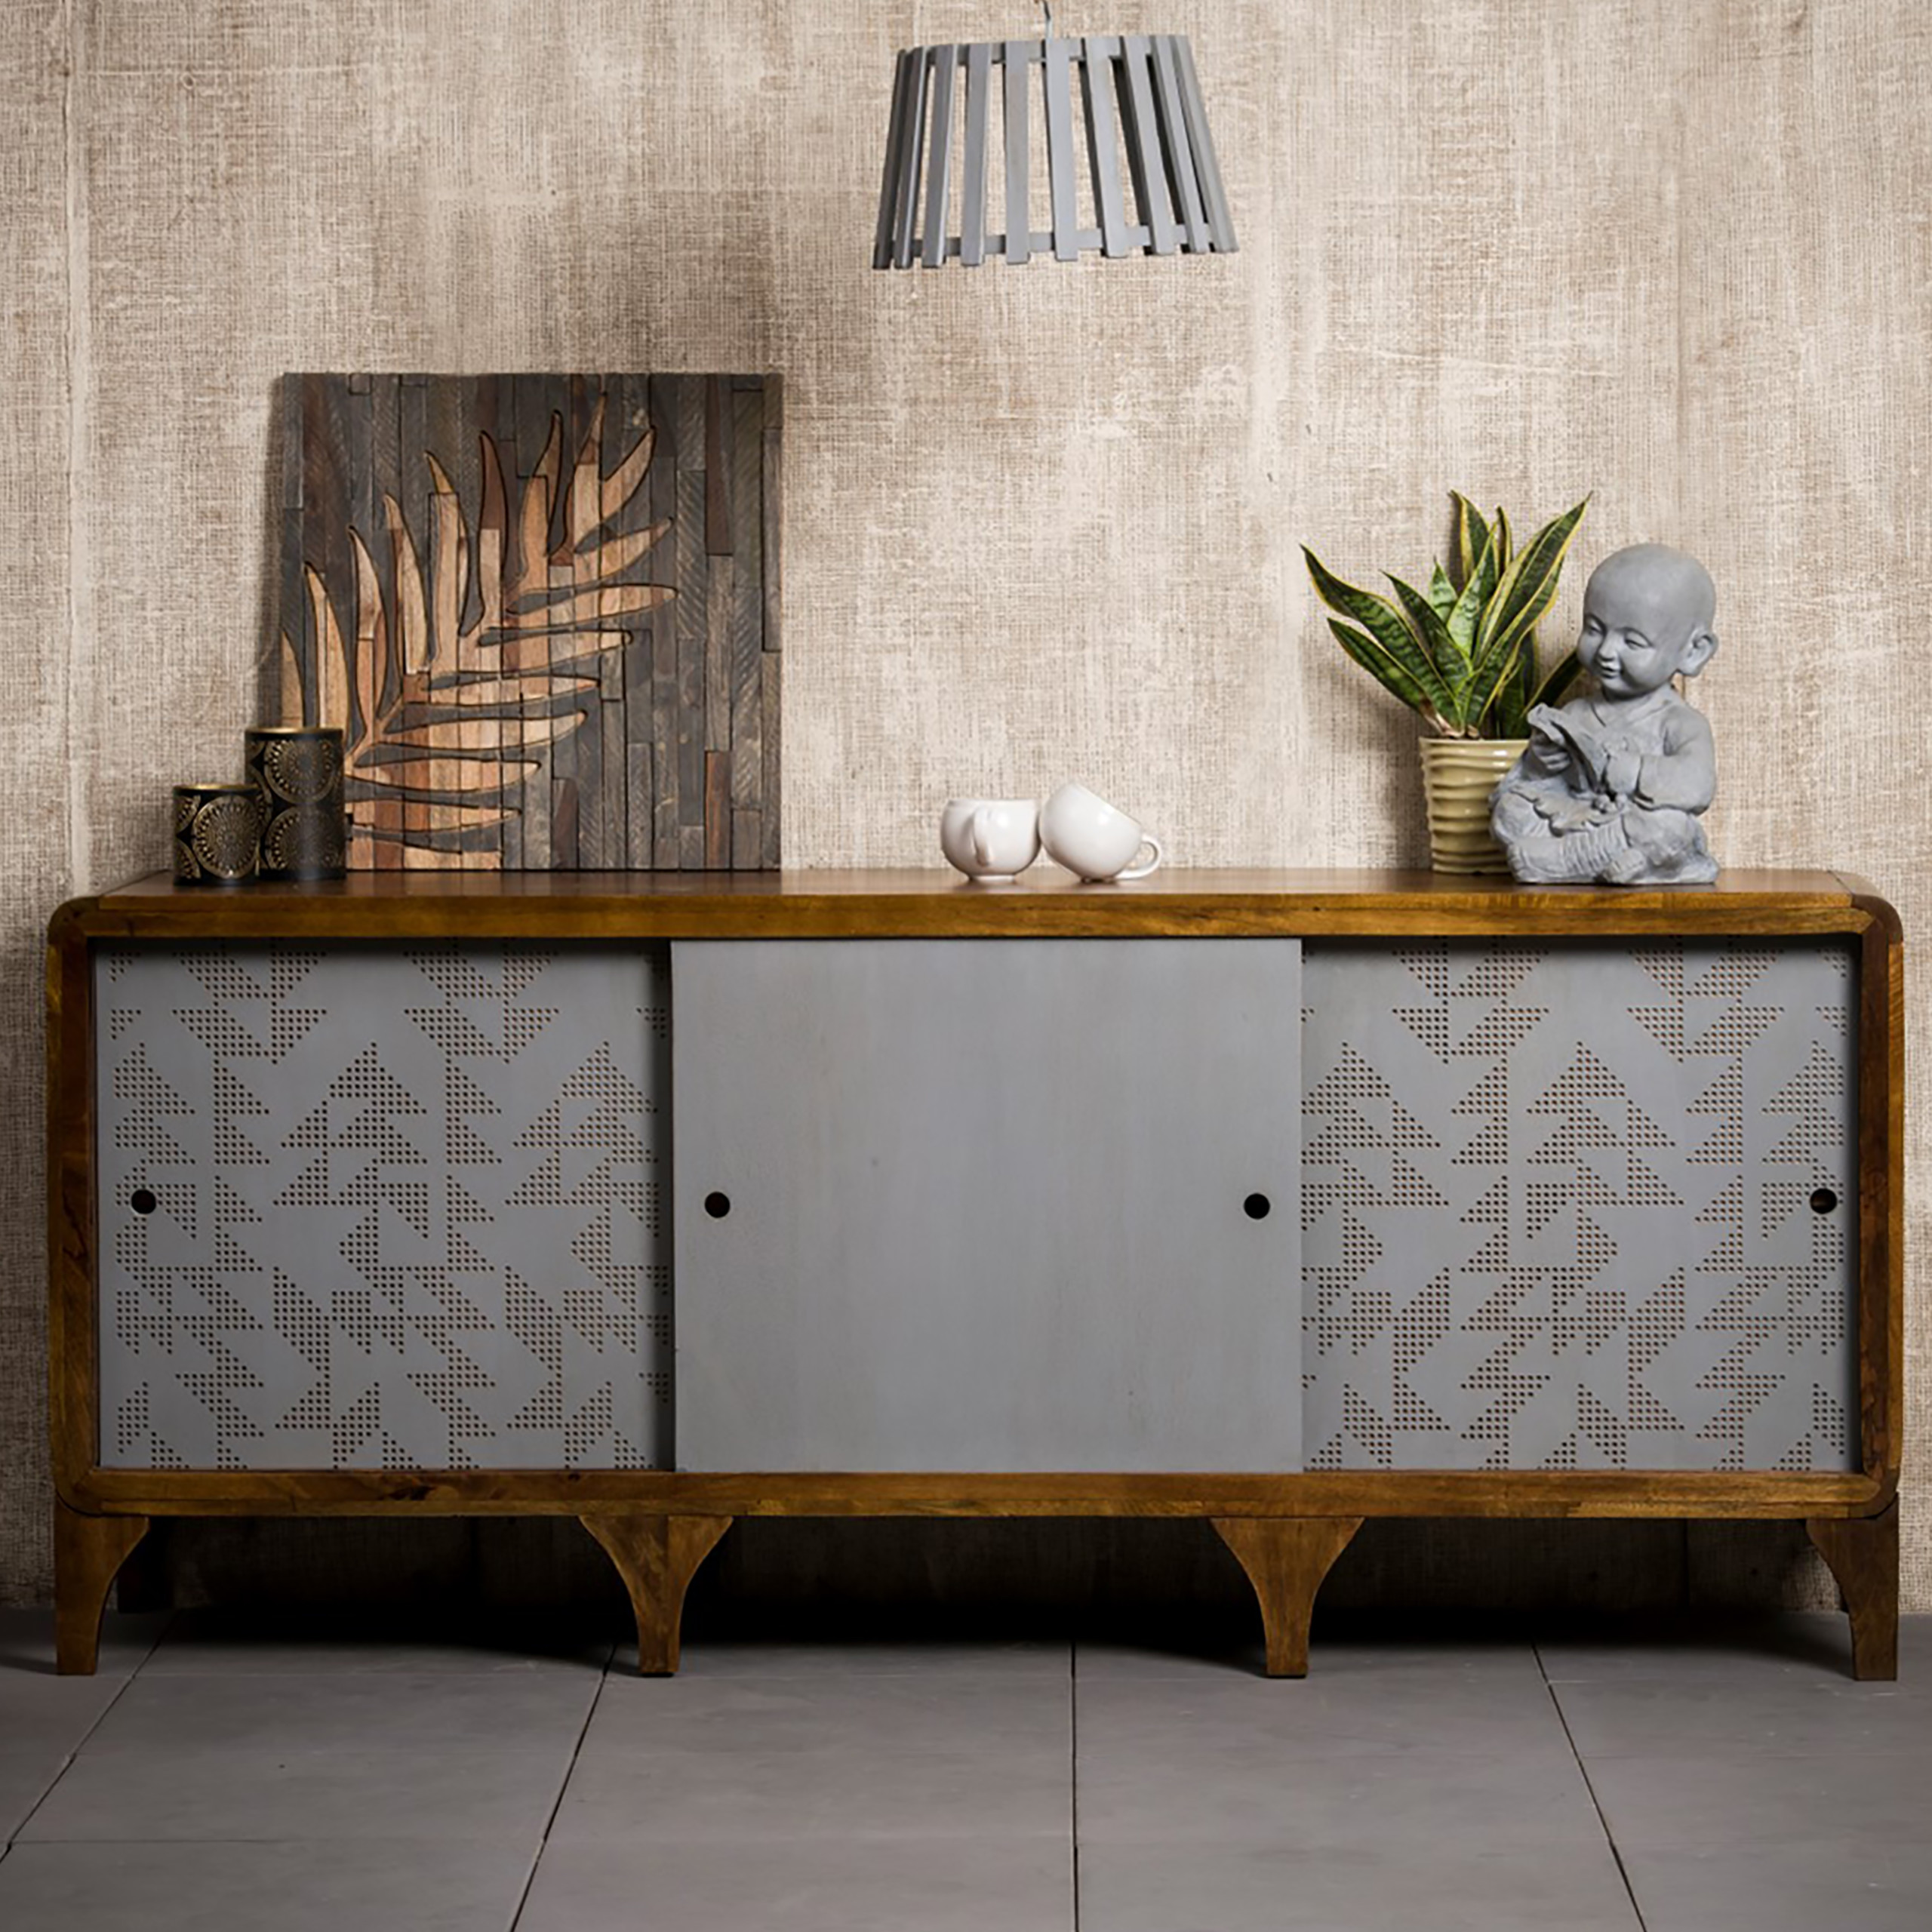 Details About 180 Cm Wooden Sideboard Kitchen Buffet Stand Modern Living Room Cabinet Brown